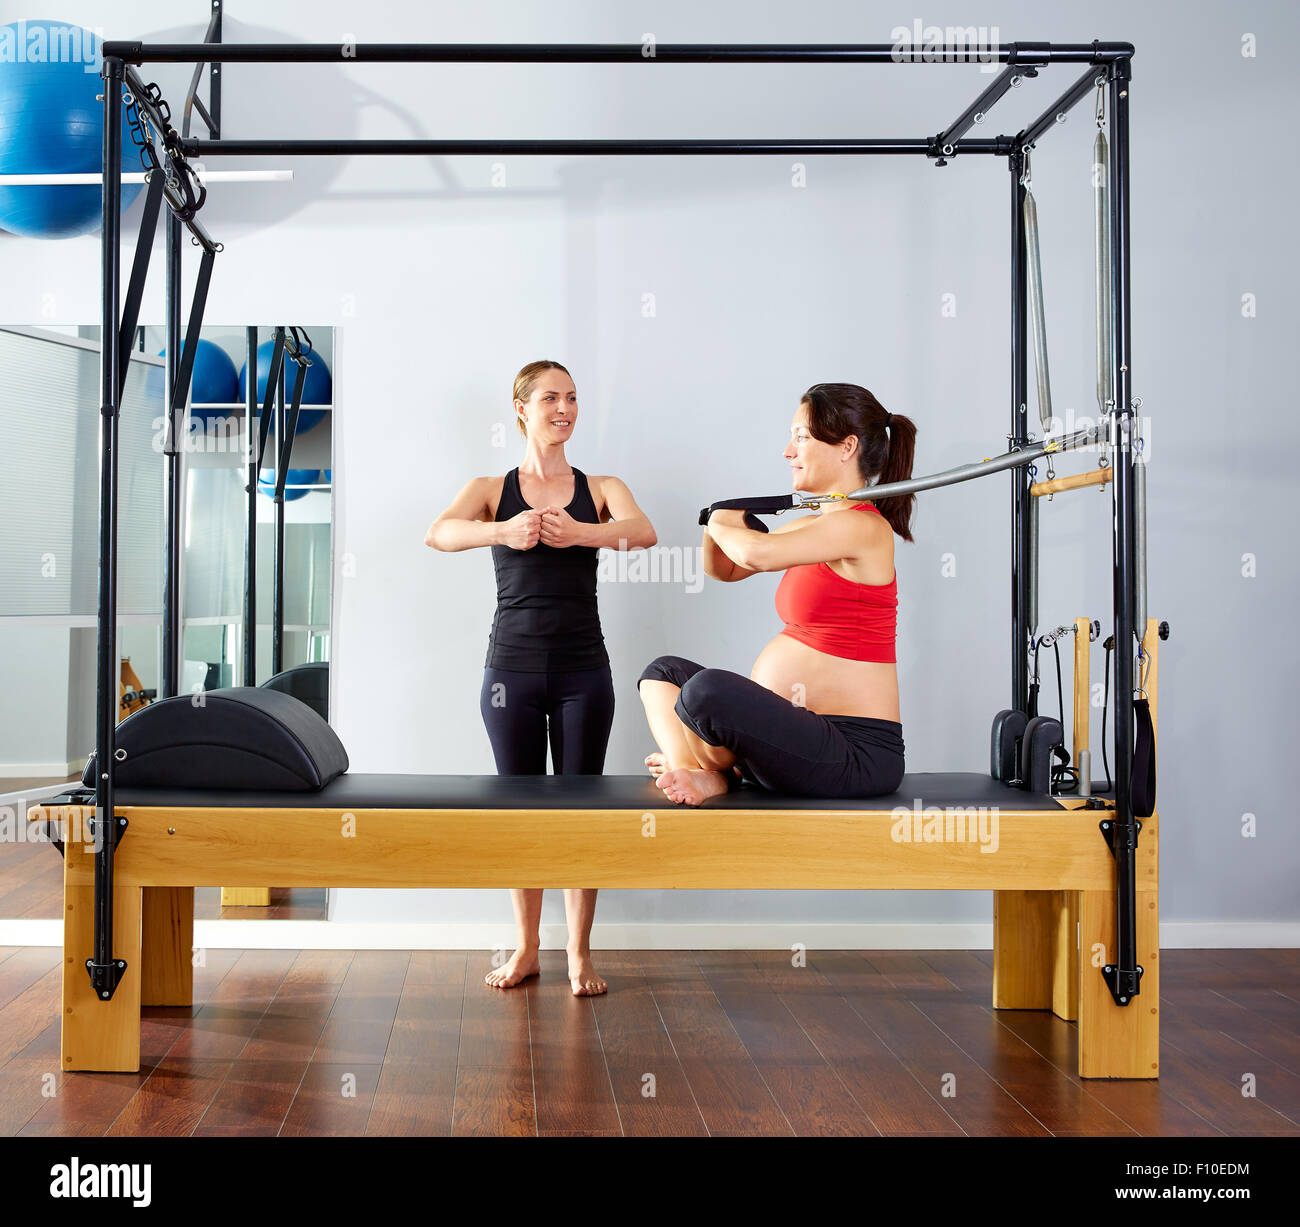 Woman Pilates Chair Exercises Fitness Stock Photo: Pregnant Woman Pilates Reformer Cadillac Arms Exercise